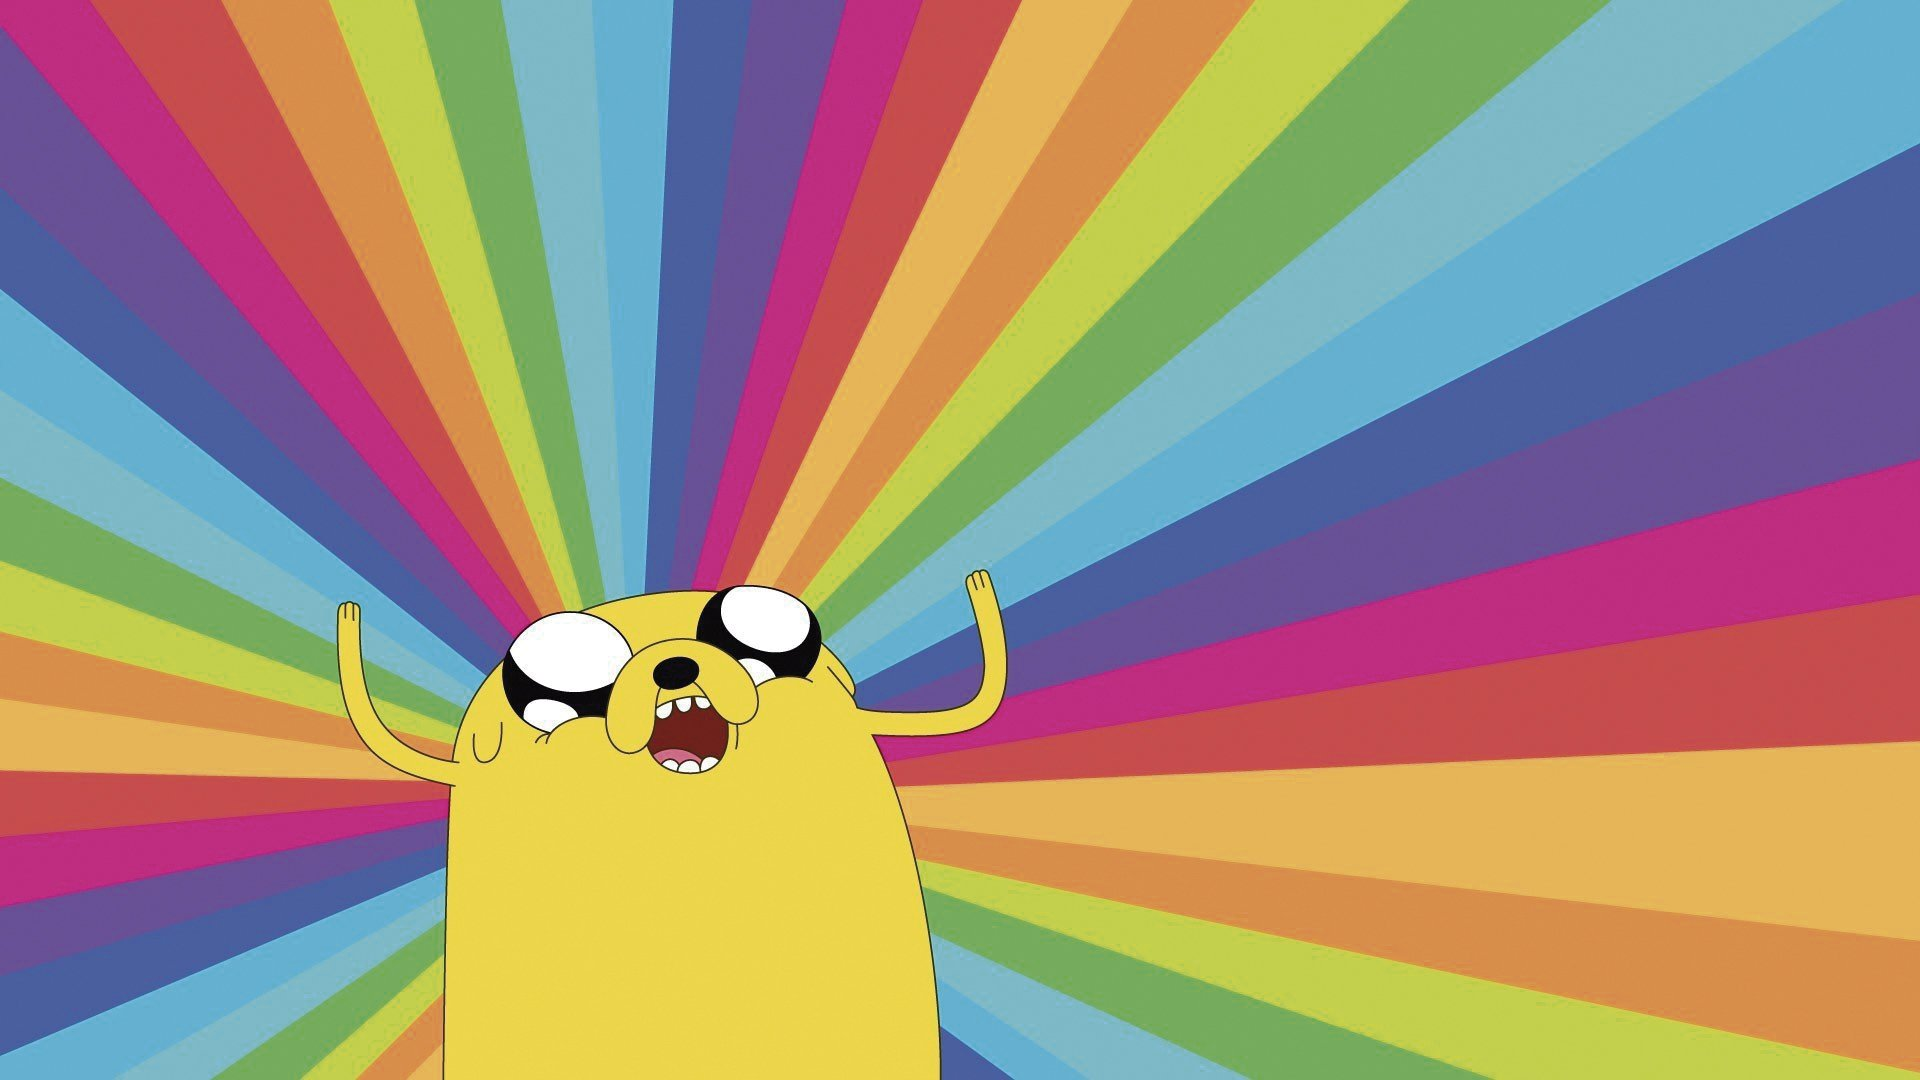 342 Adventure Time Hd Wallpapers Background Images Wallpaper Abyss